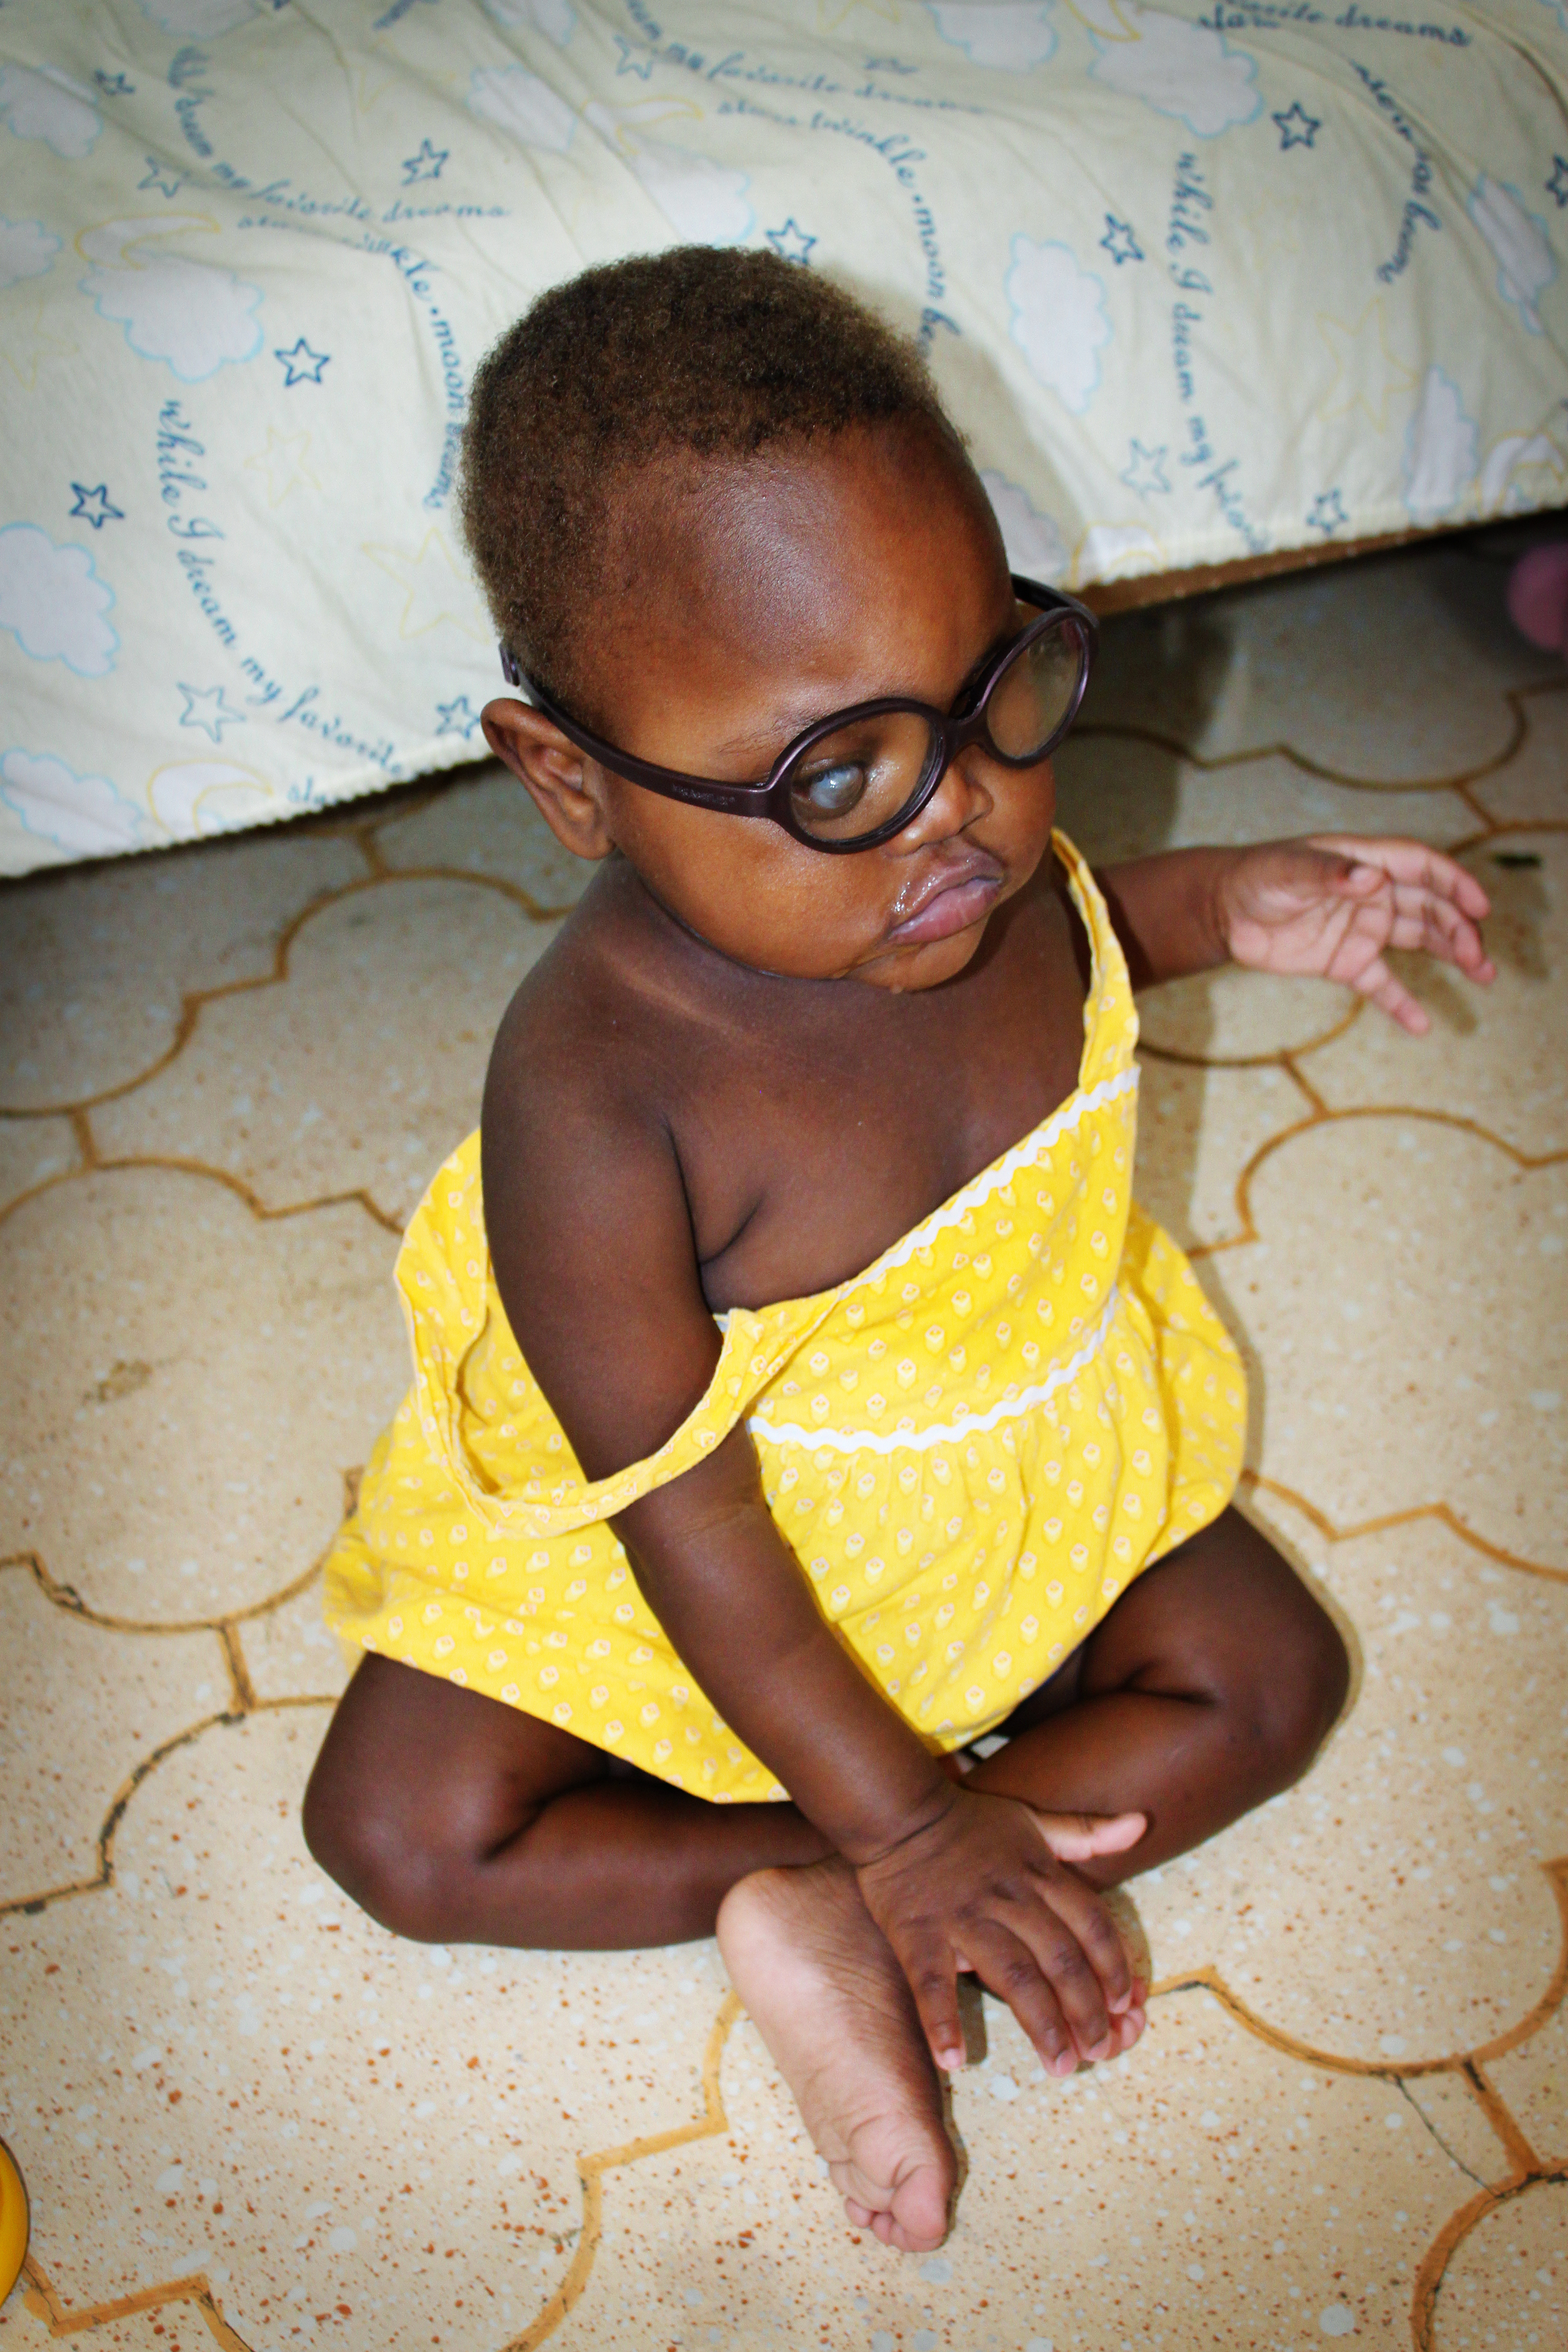 Wearing her protective glasses